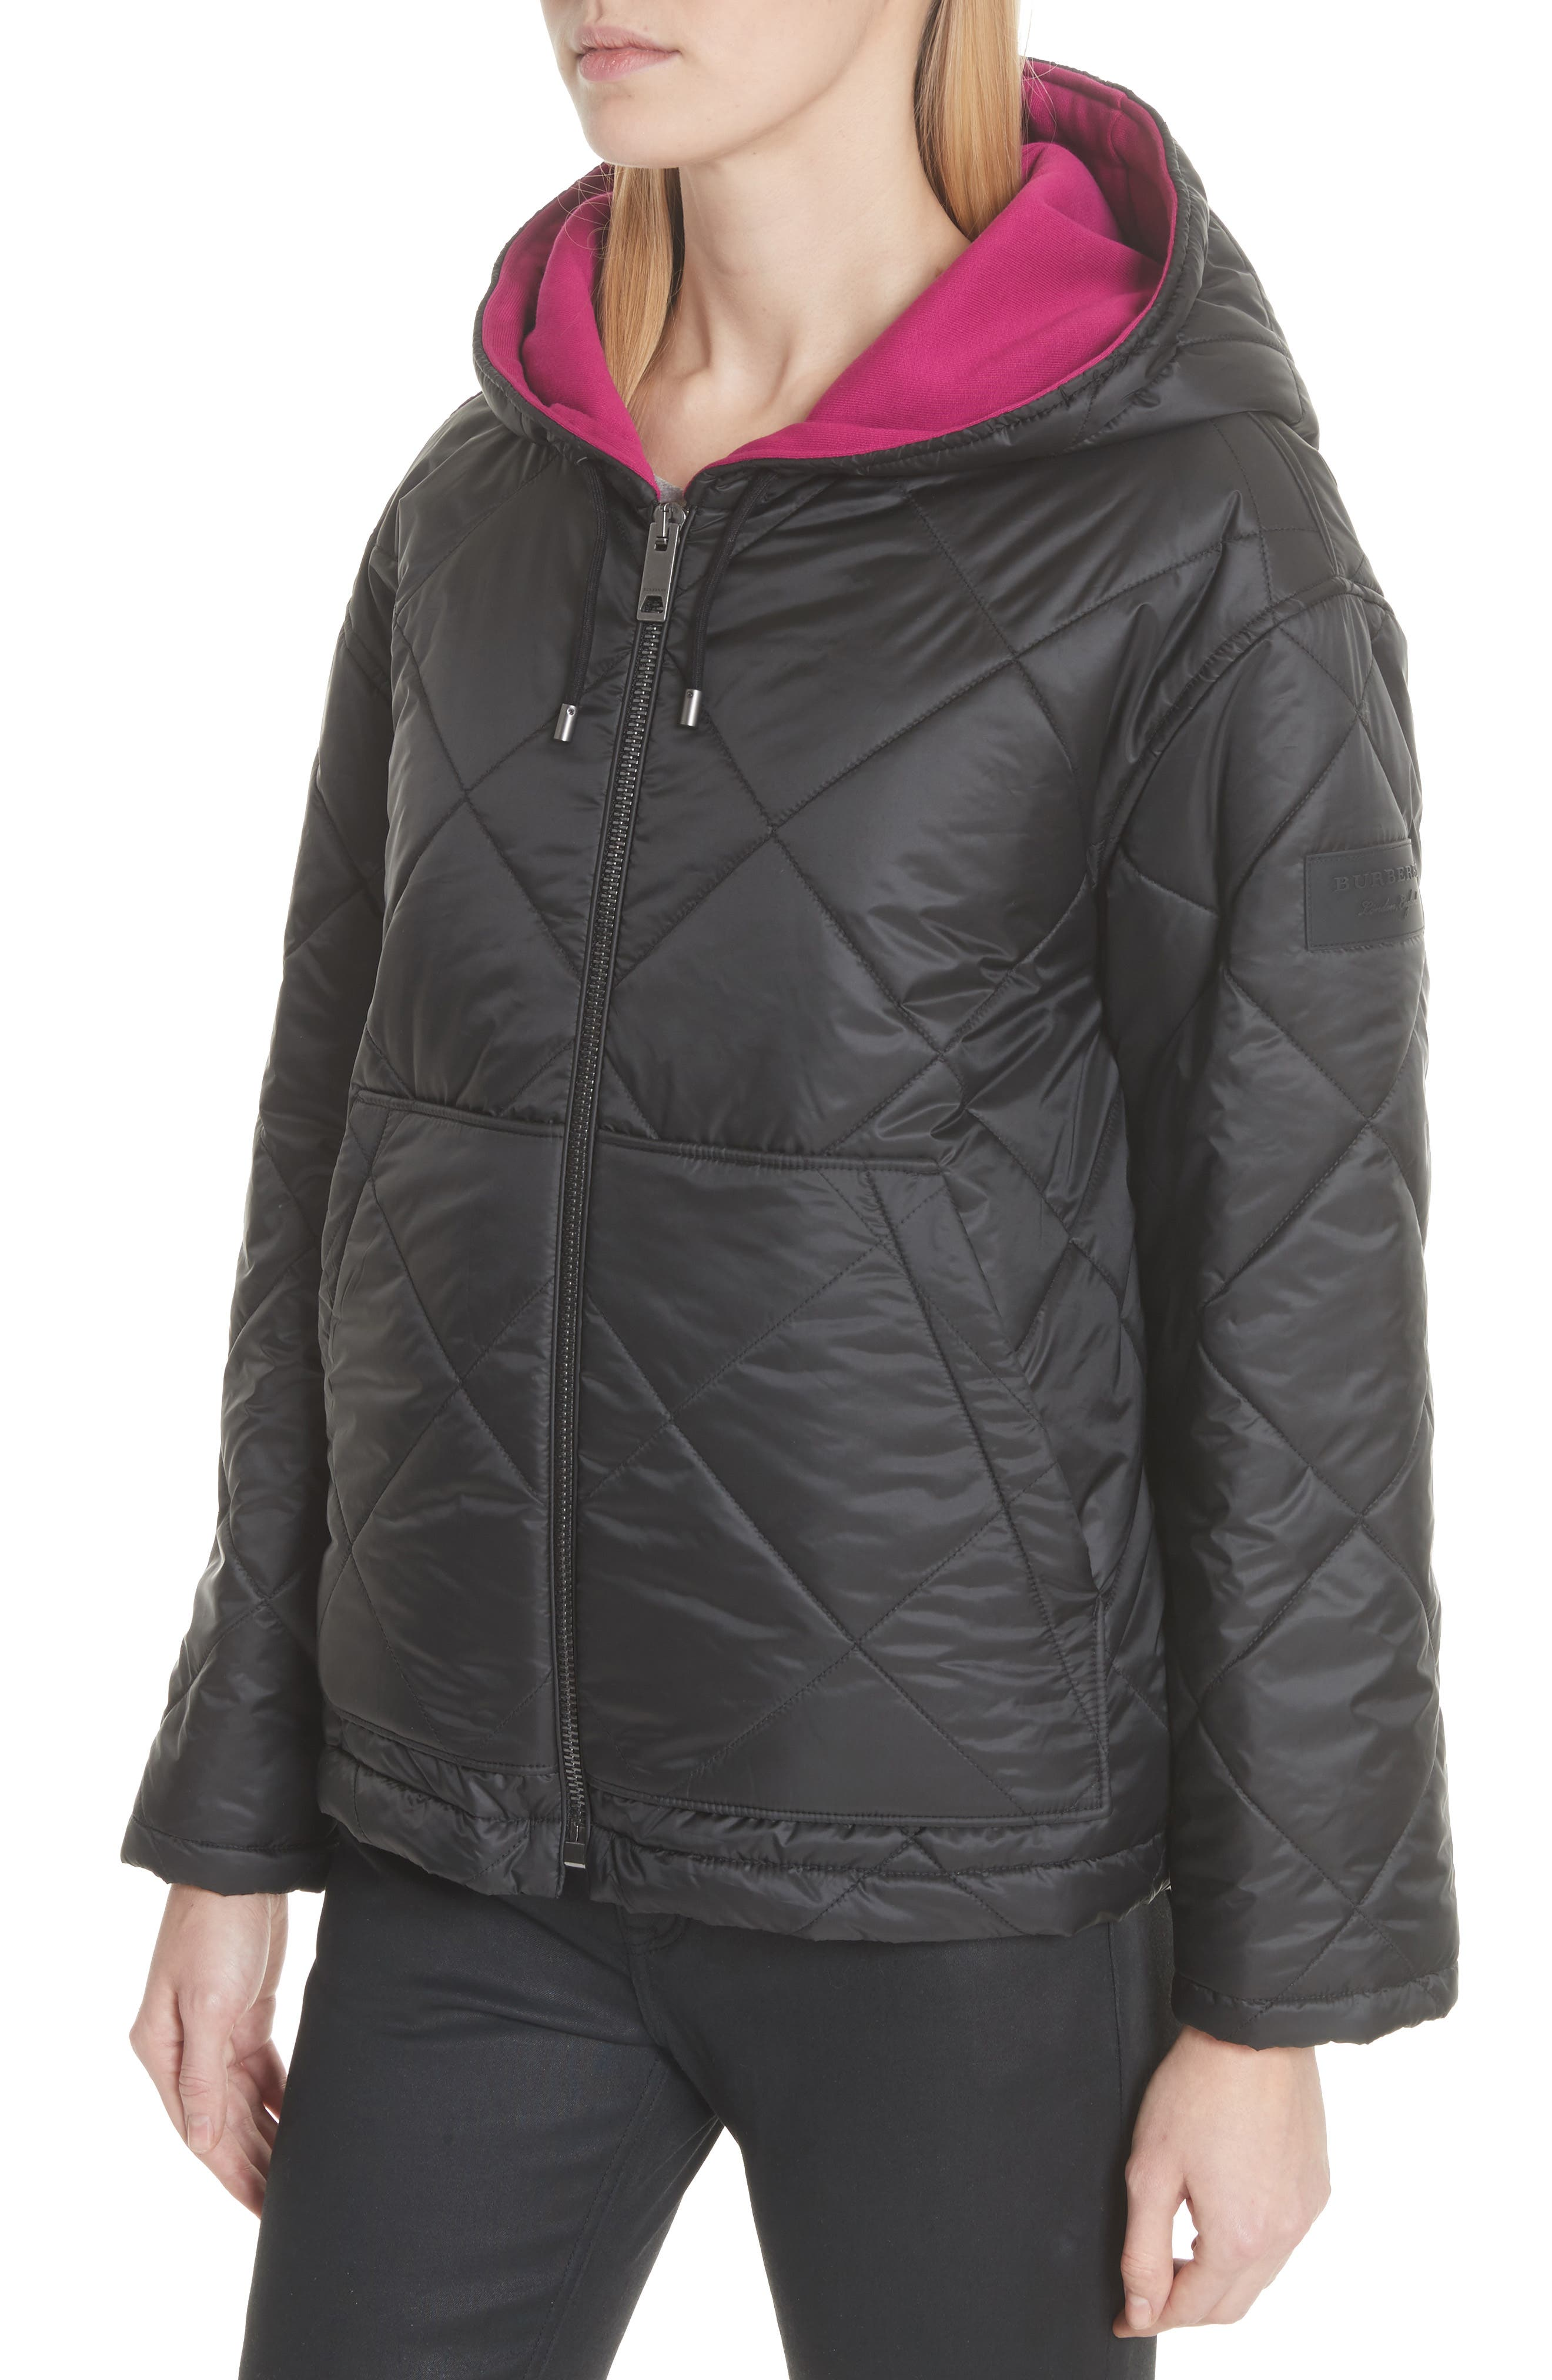 Tyneham Lined Quilted Jacket,                             Alternate thumbnail 4, color,                             001